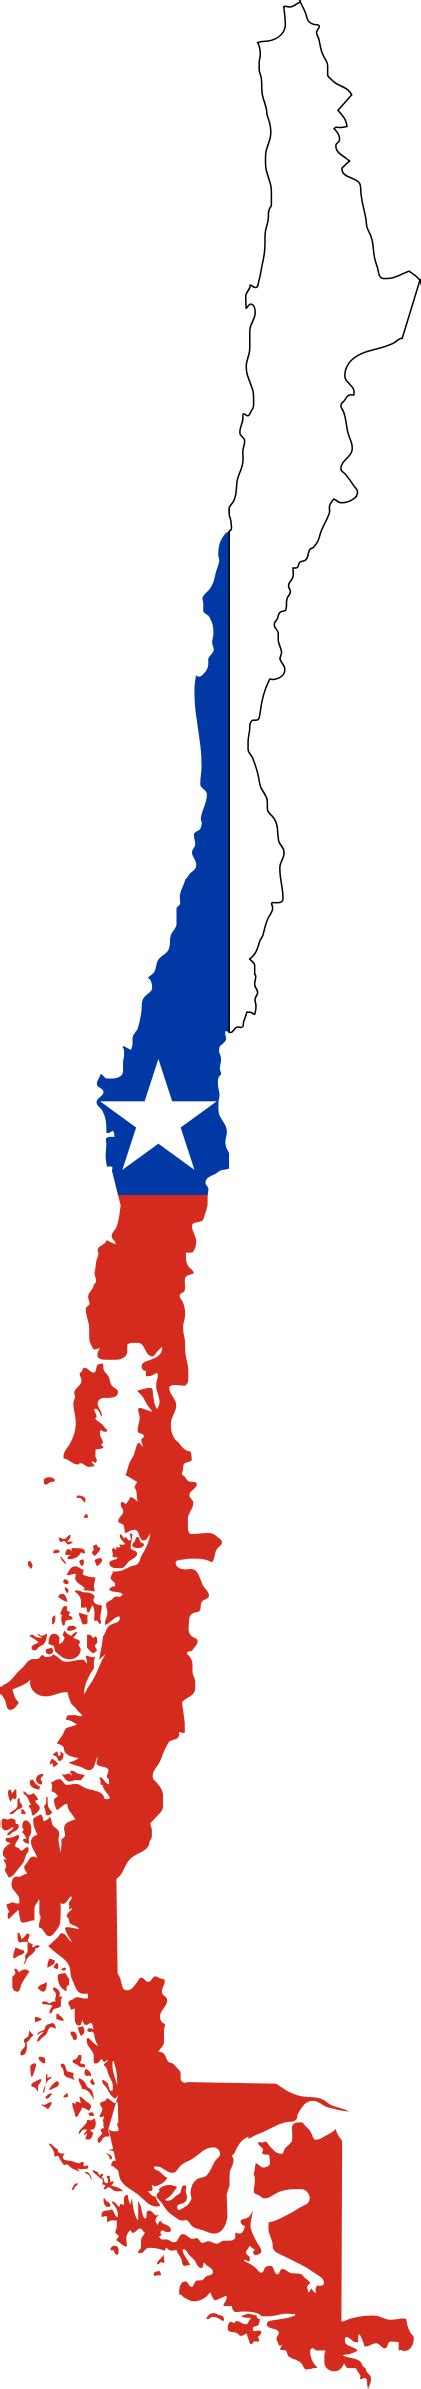 chile flag colors chile map png